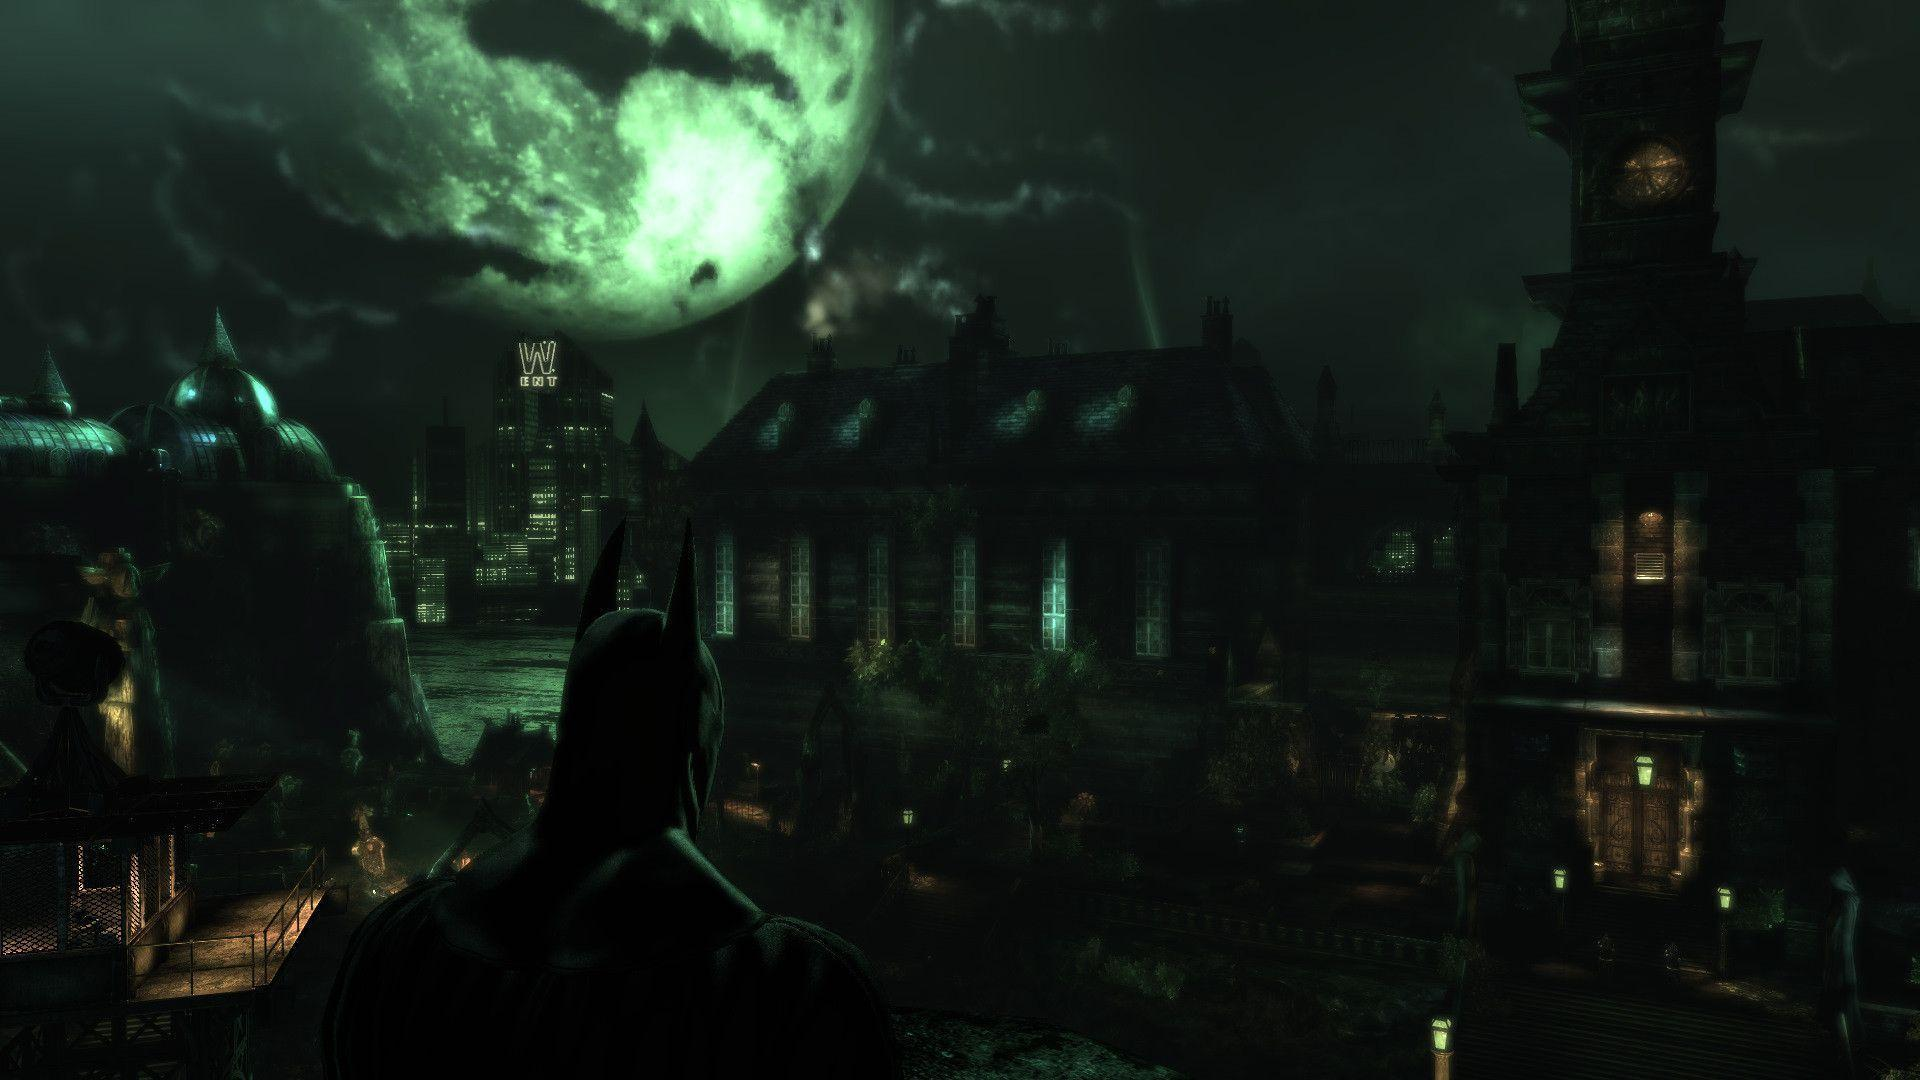 joker arkham asylum wallpaper hd. legend of korra choice image